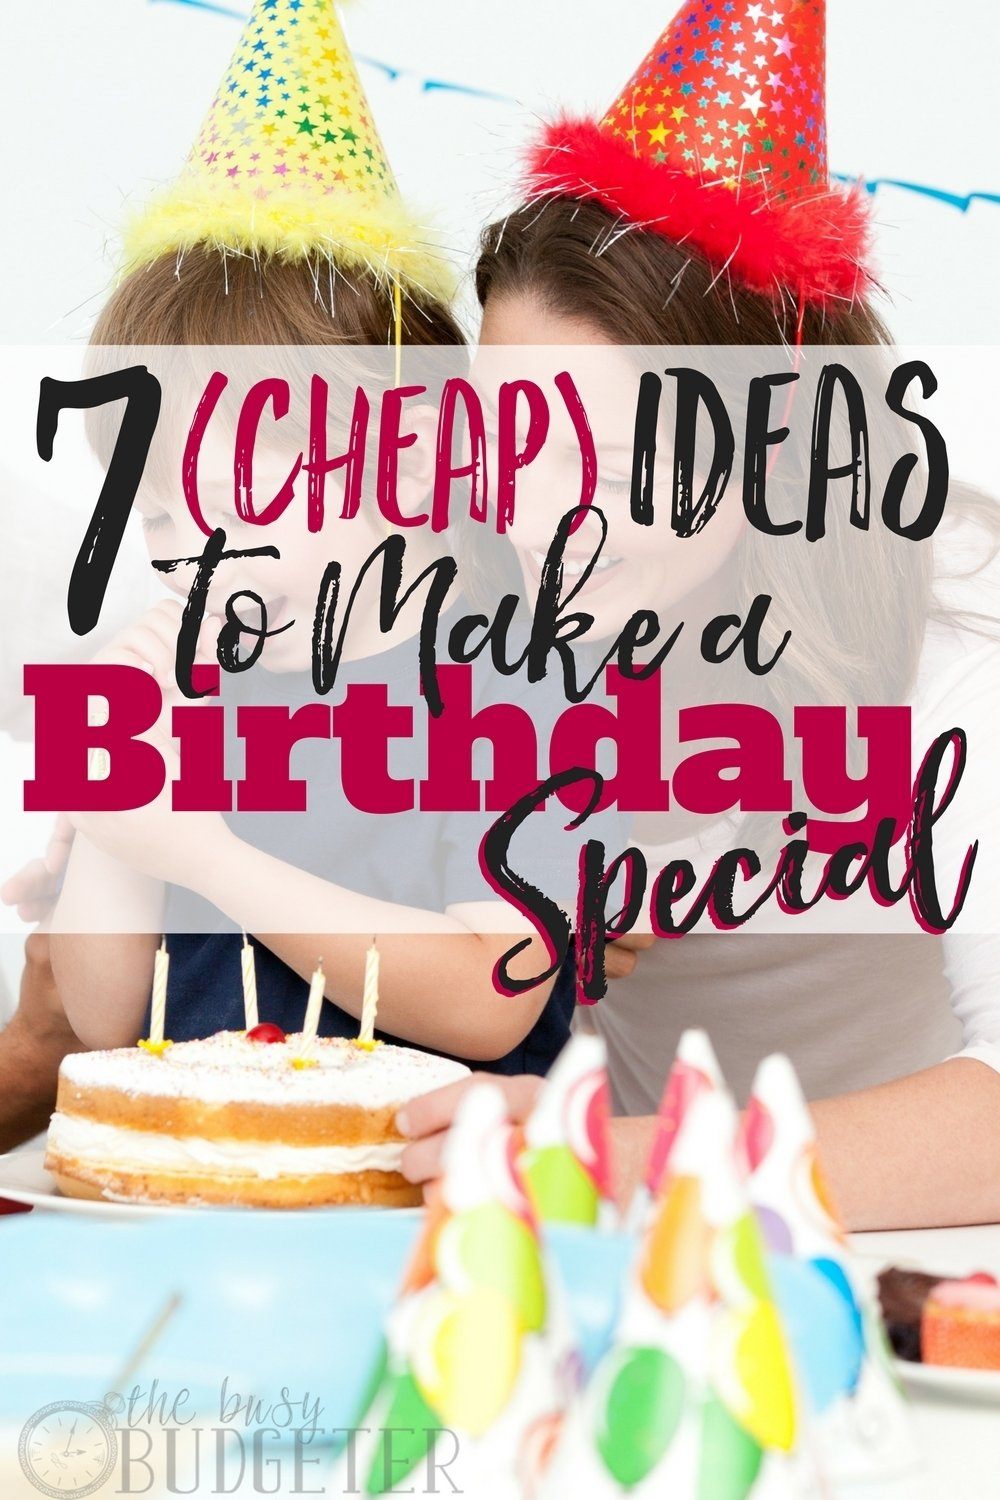 10 Lovely Birthday Ideas For Husband On A Budget 7 cheap ideas to make a birthday special busy budgeter